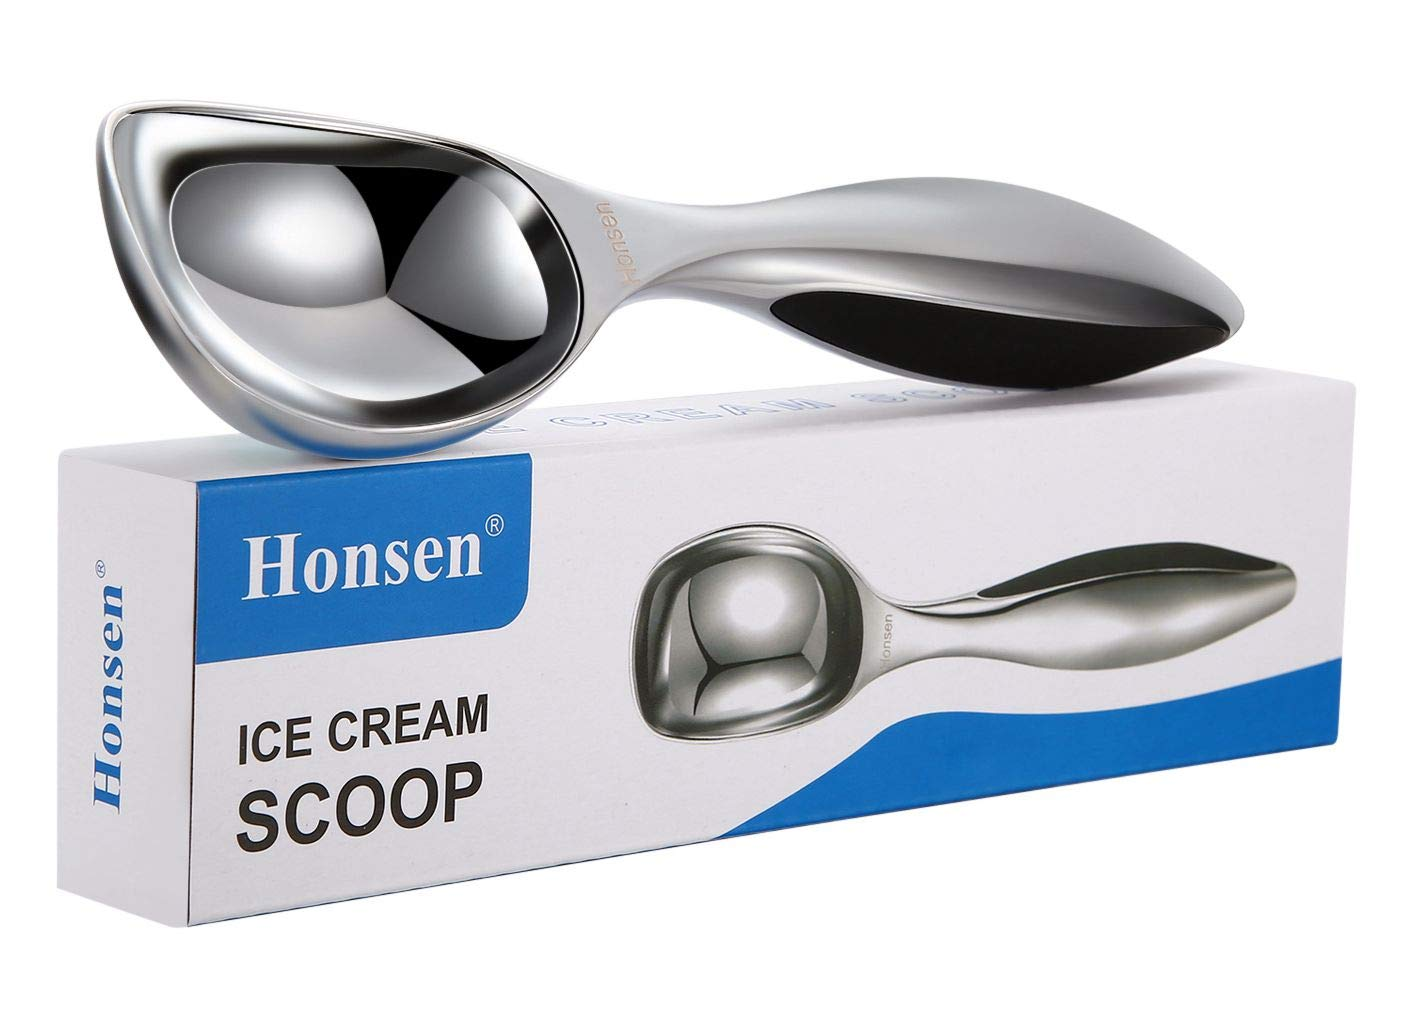 Honsen Solid Stainless Steel Ice Cream Scoop with Thickening Handle by Honsen